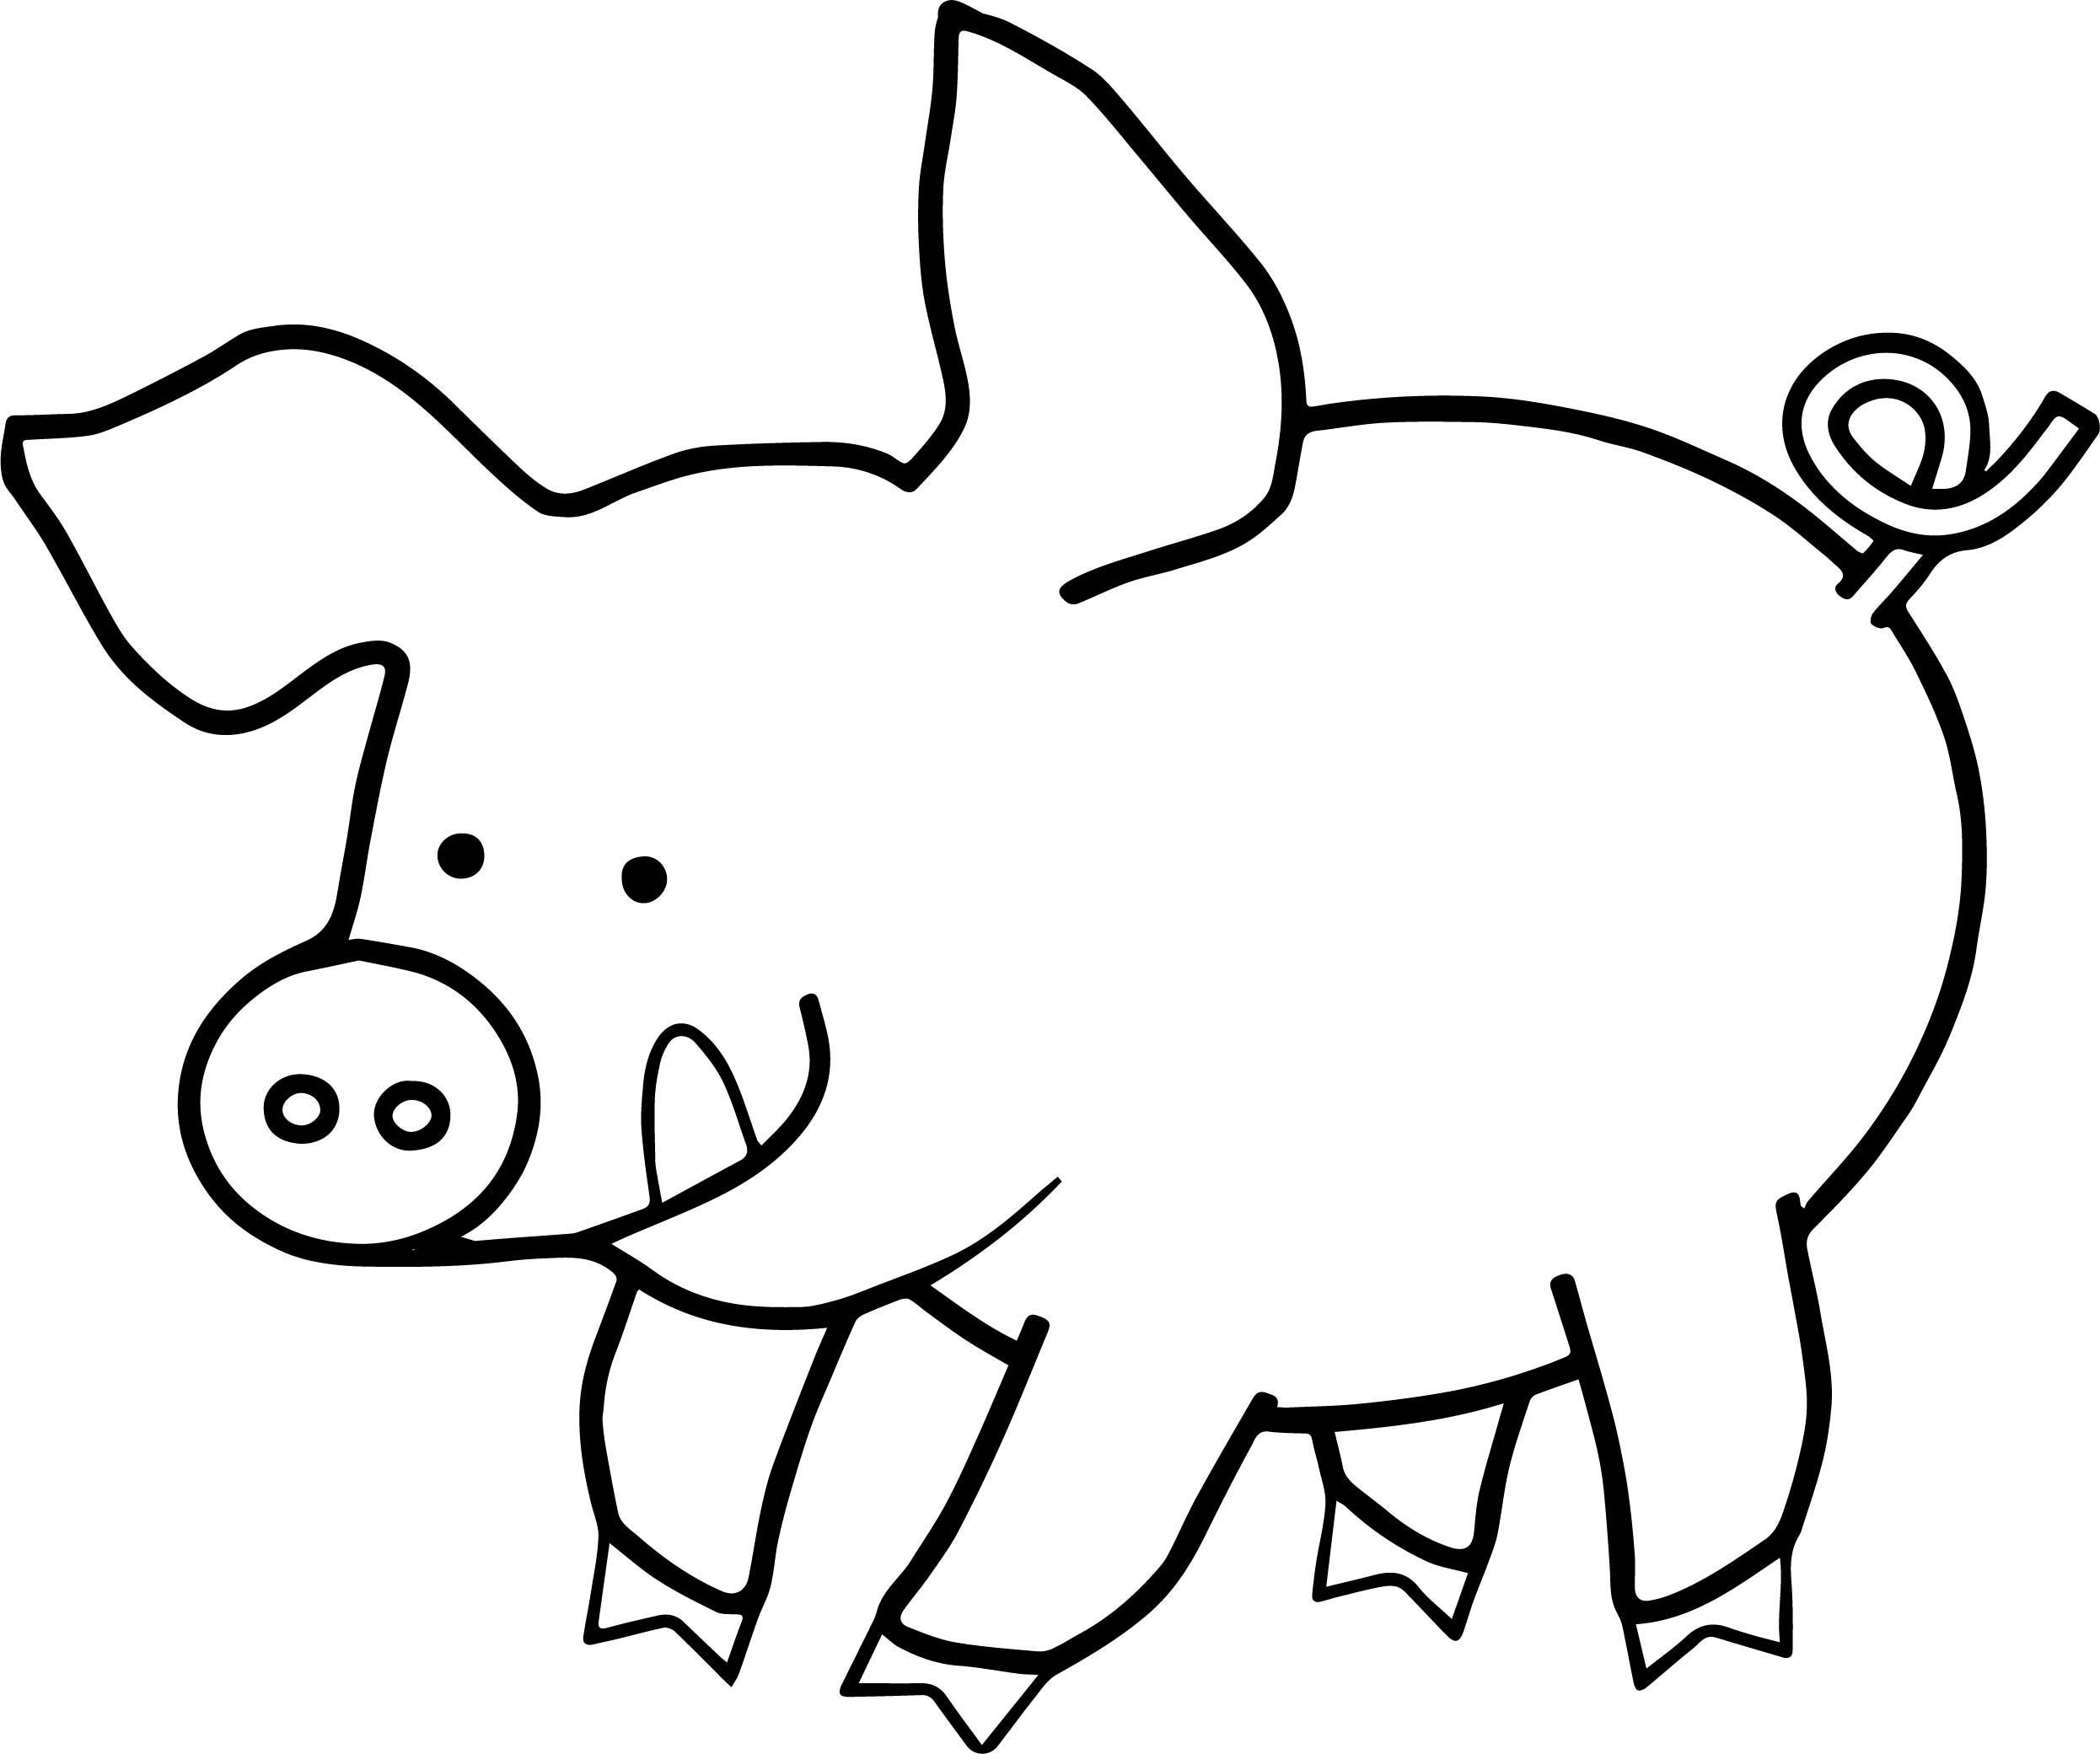 Free Guinea Pig Coloring Pages Free Printable Pig Coloring Pages At Getdrawings Free For